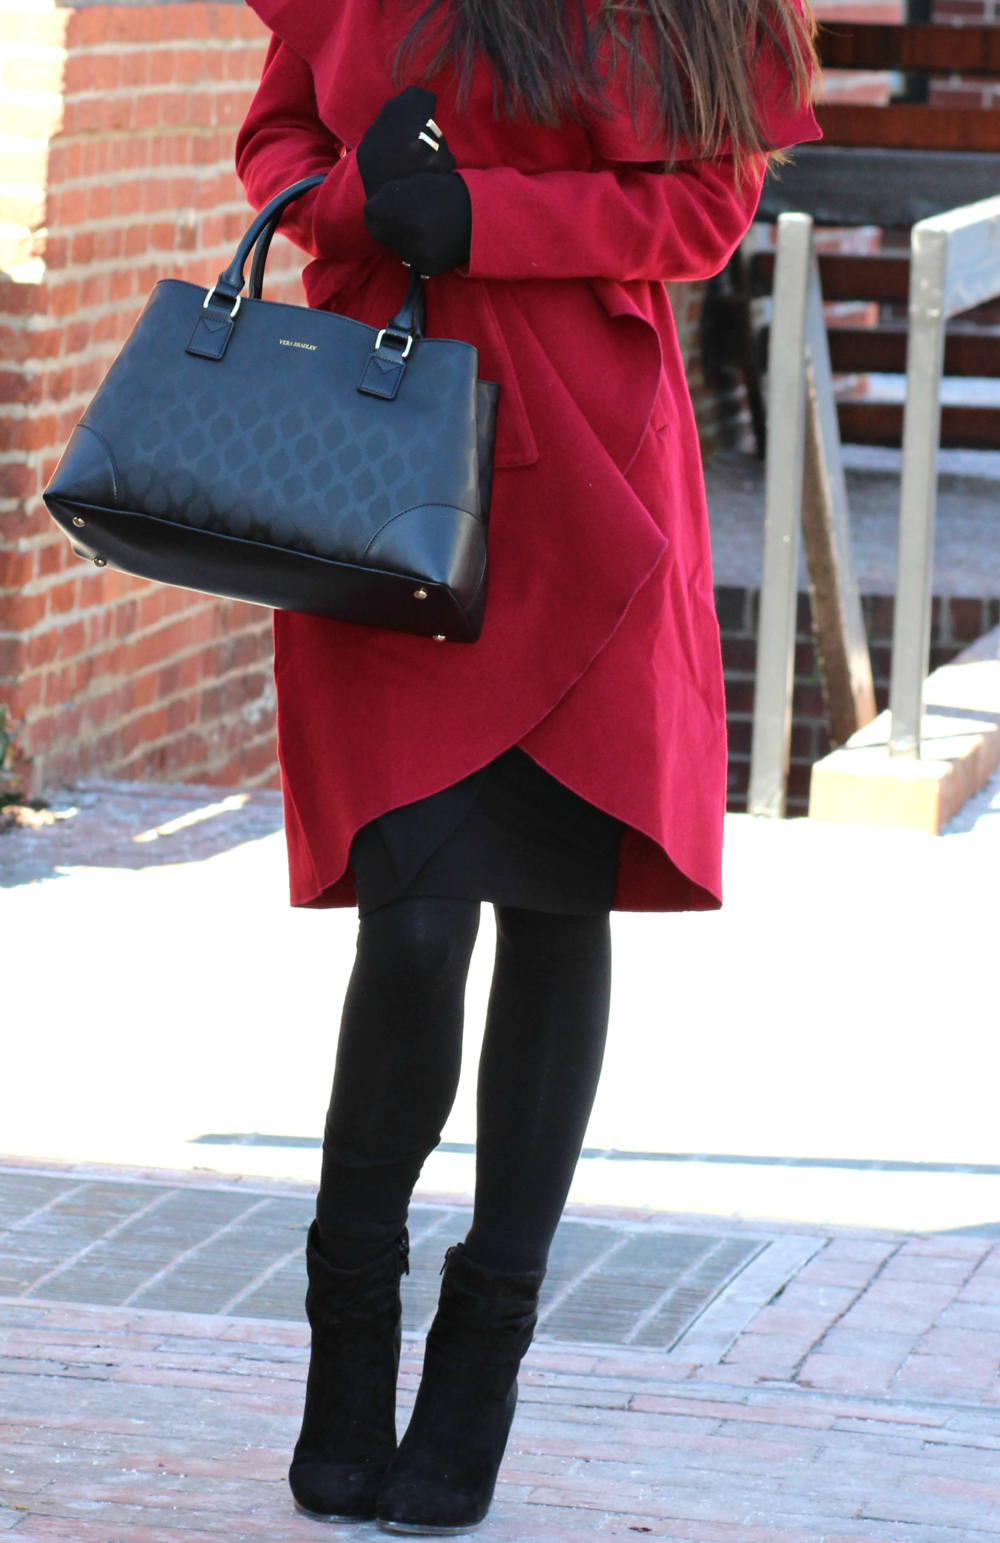 Burgundy Ruffle Coat, SheIn Coat, Inexpensive Burgundy Coat, Vera Bradley satchel, Stephanie Ziajka, Diary of a Debutante